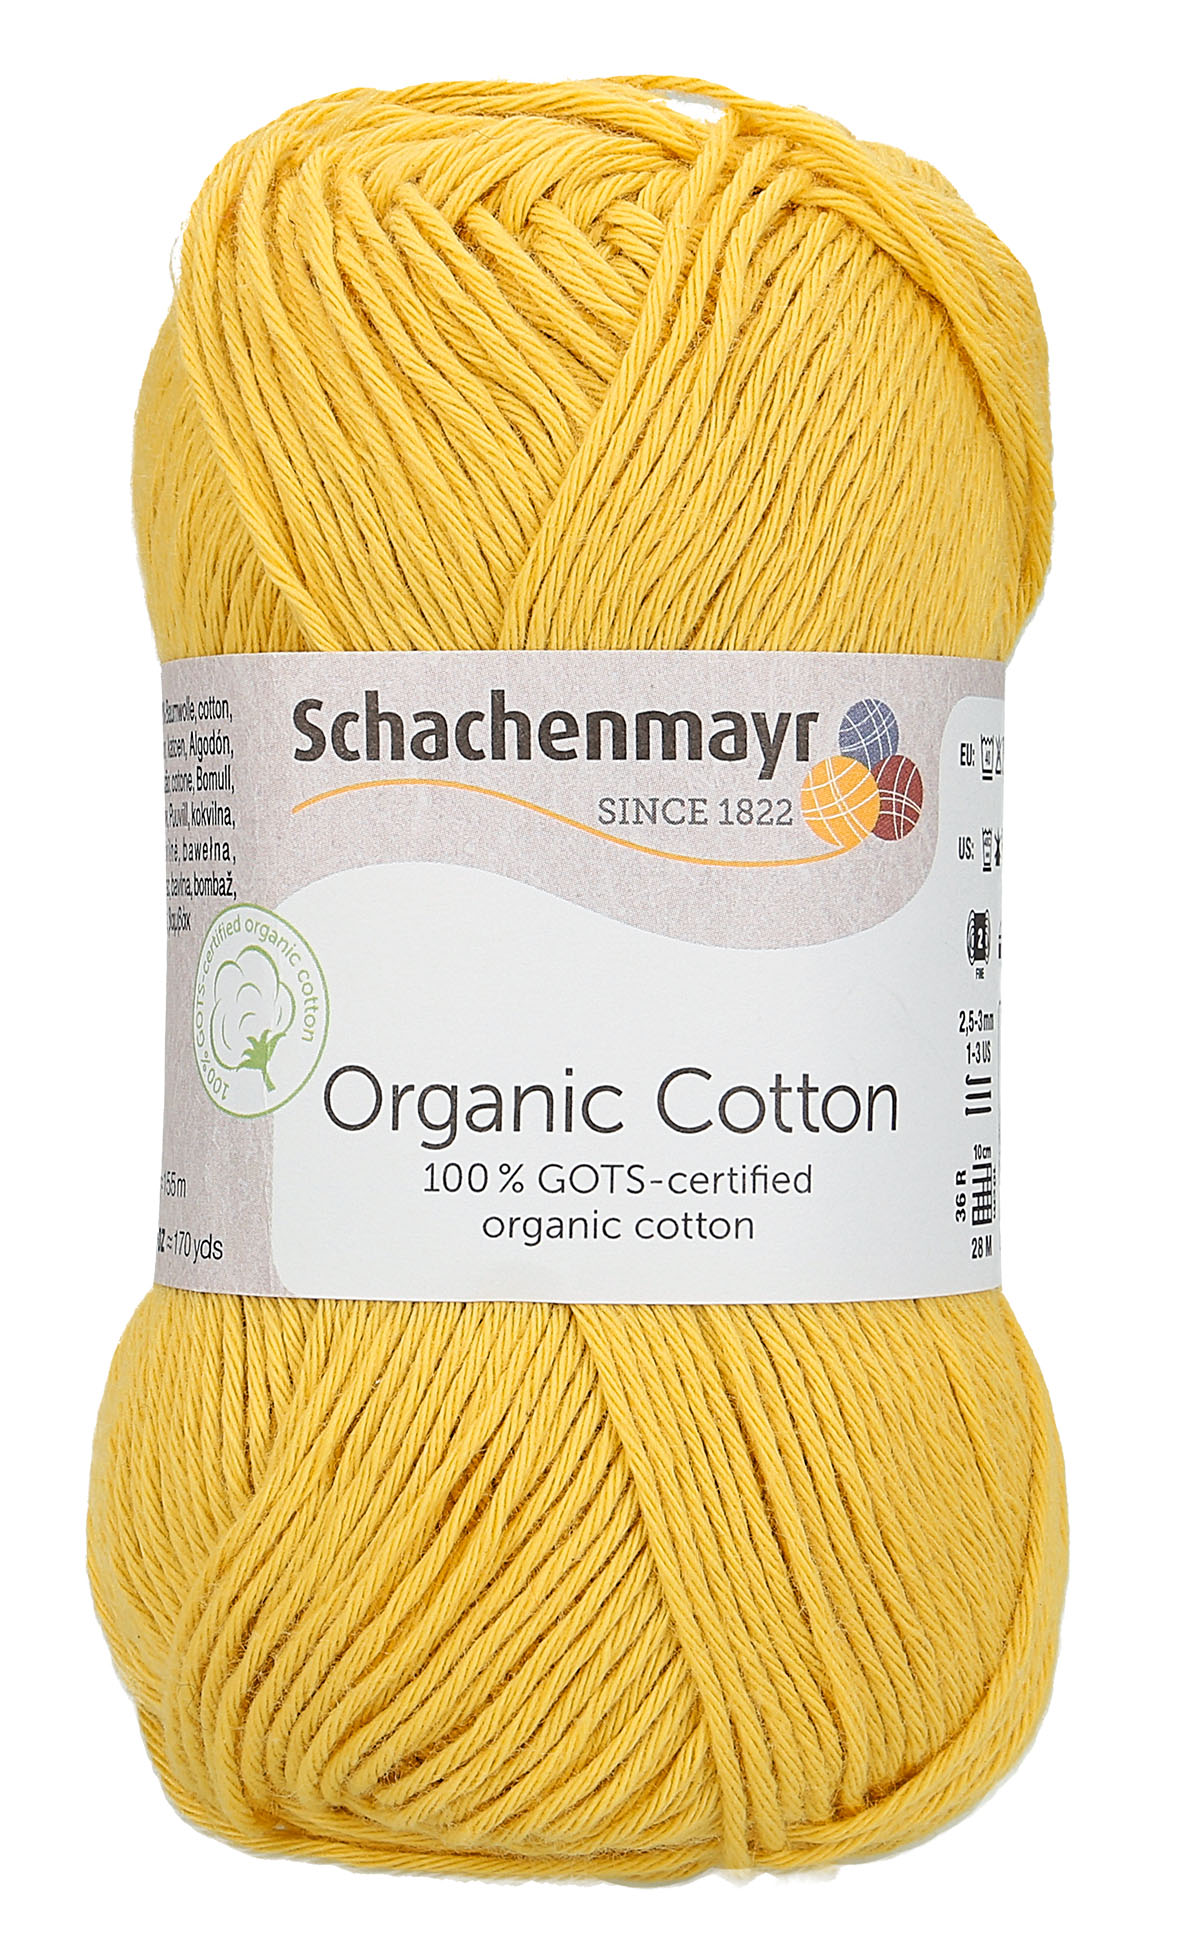 Titel-Organic-Cotton-gelb